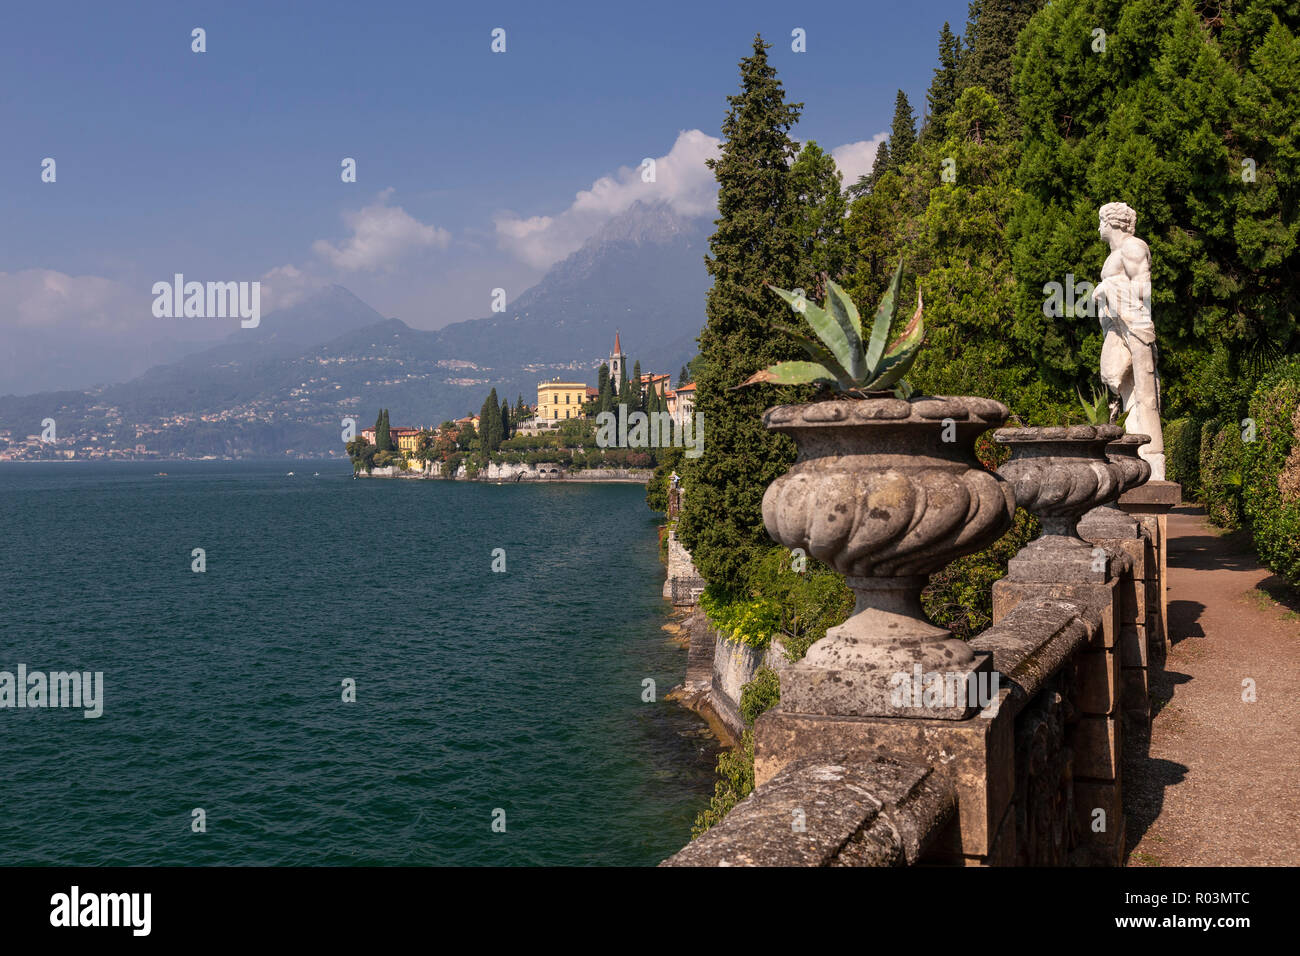 Statue in the gardens of Villa Monastero at Varenna on Lake Como, ItalyStock Photo